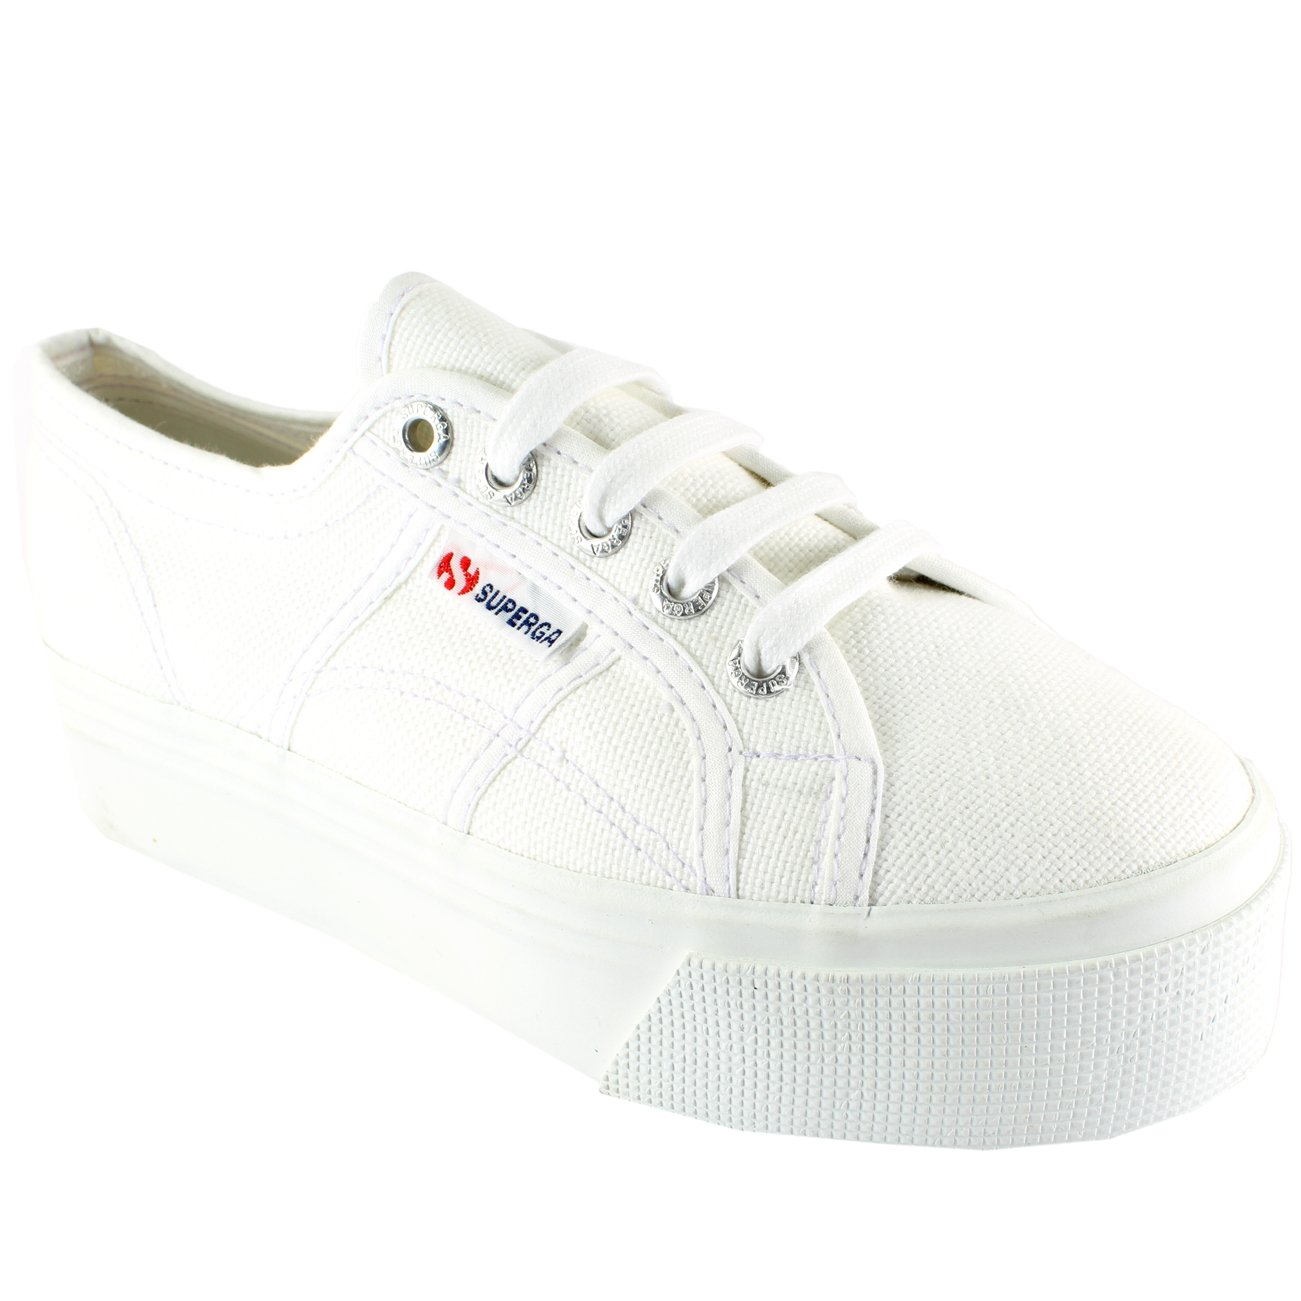 4a3b2876b Womens Superga 2790 Canvas Plimsoll Casual Flatform Low Top Trainers UK  3.5-8.5: Amazon.co.uk: Shoes & Bags